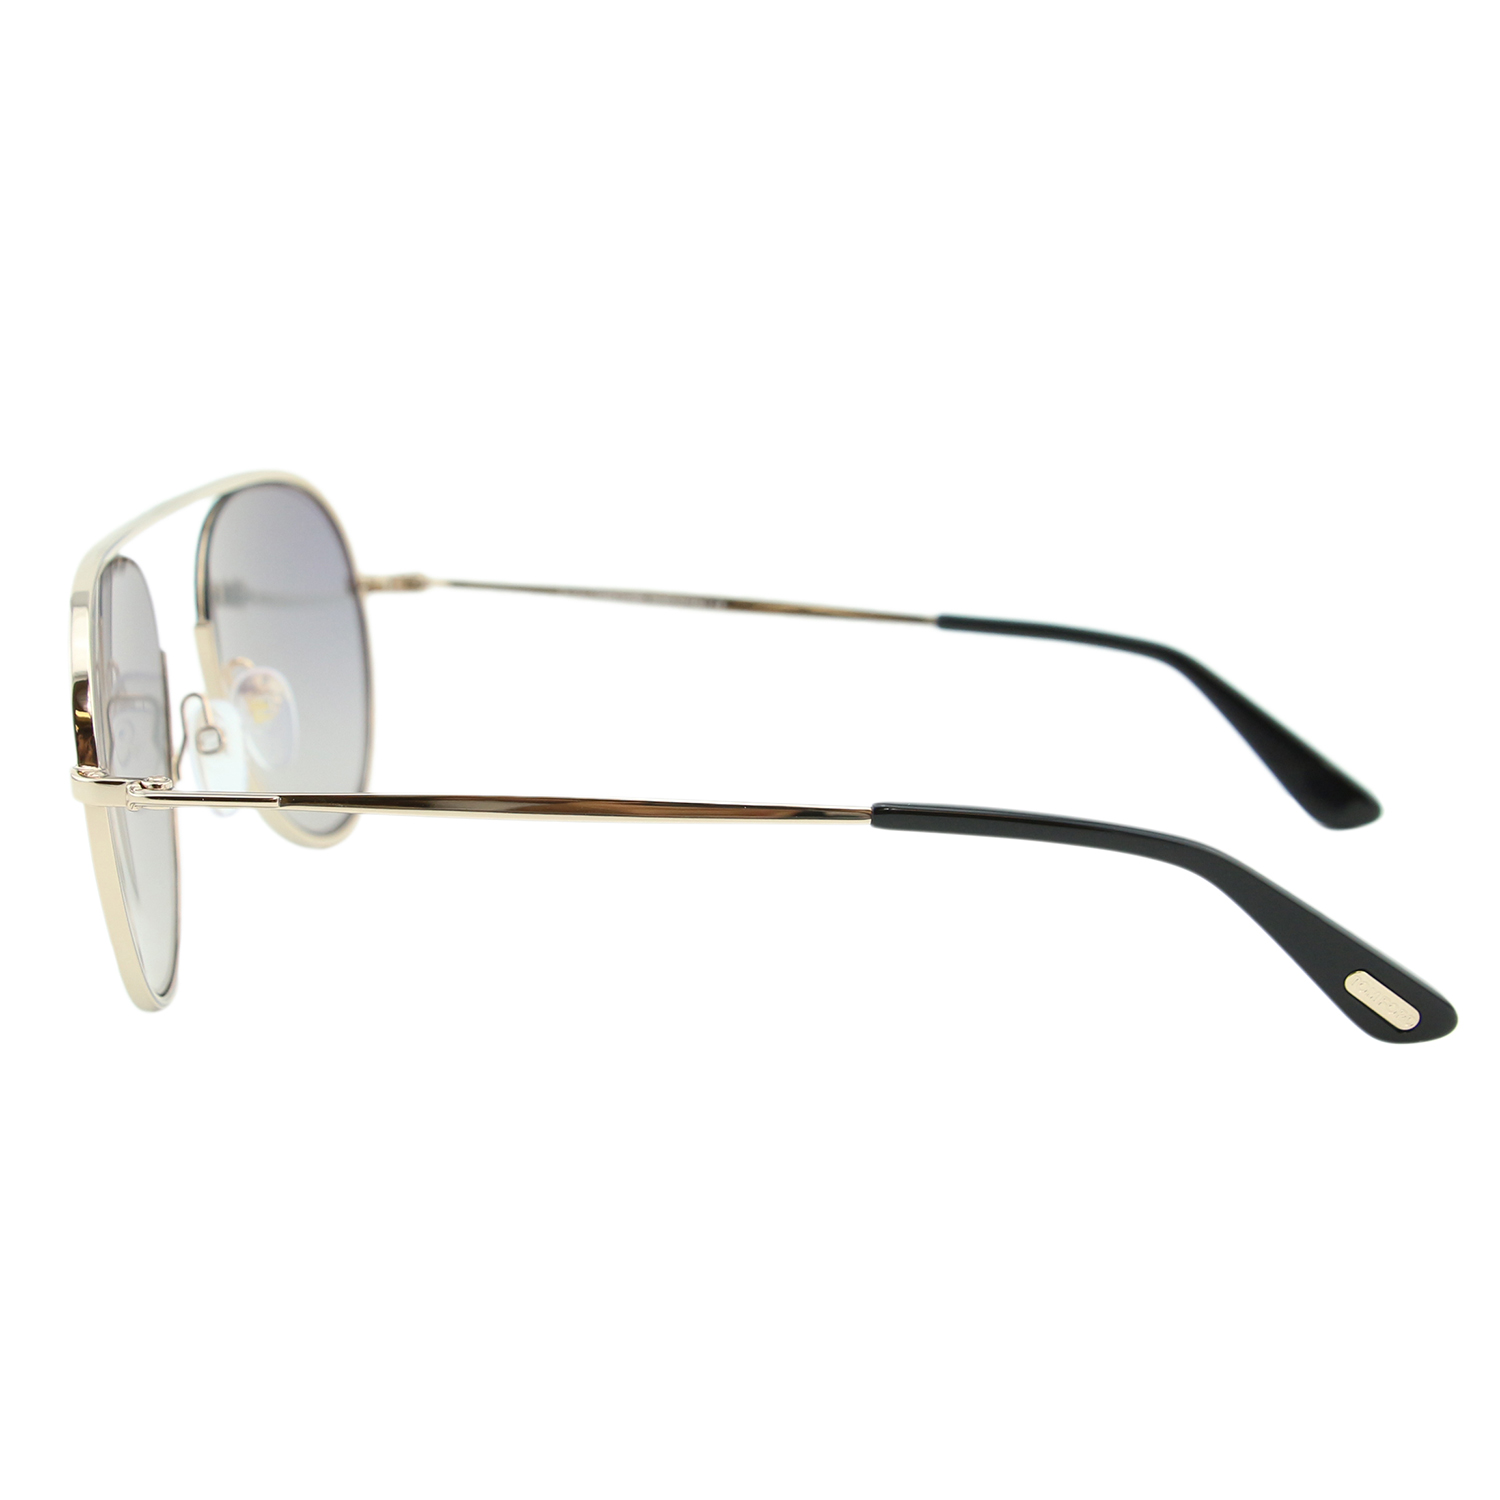 7447240a80 Tom Ford Keith-02 TF-599 28C Men Gold Round Cut-Out   Brow-Bar Flash  Sunglasses